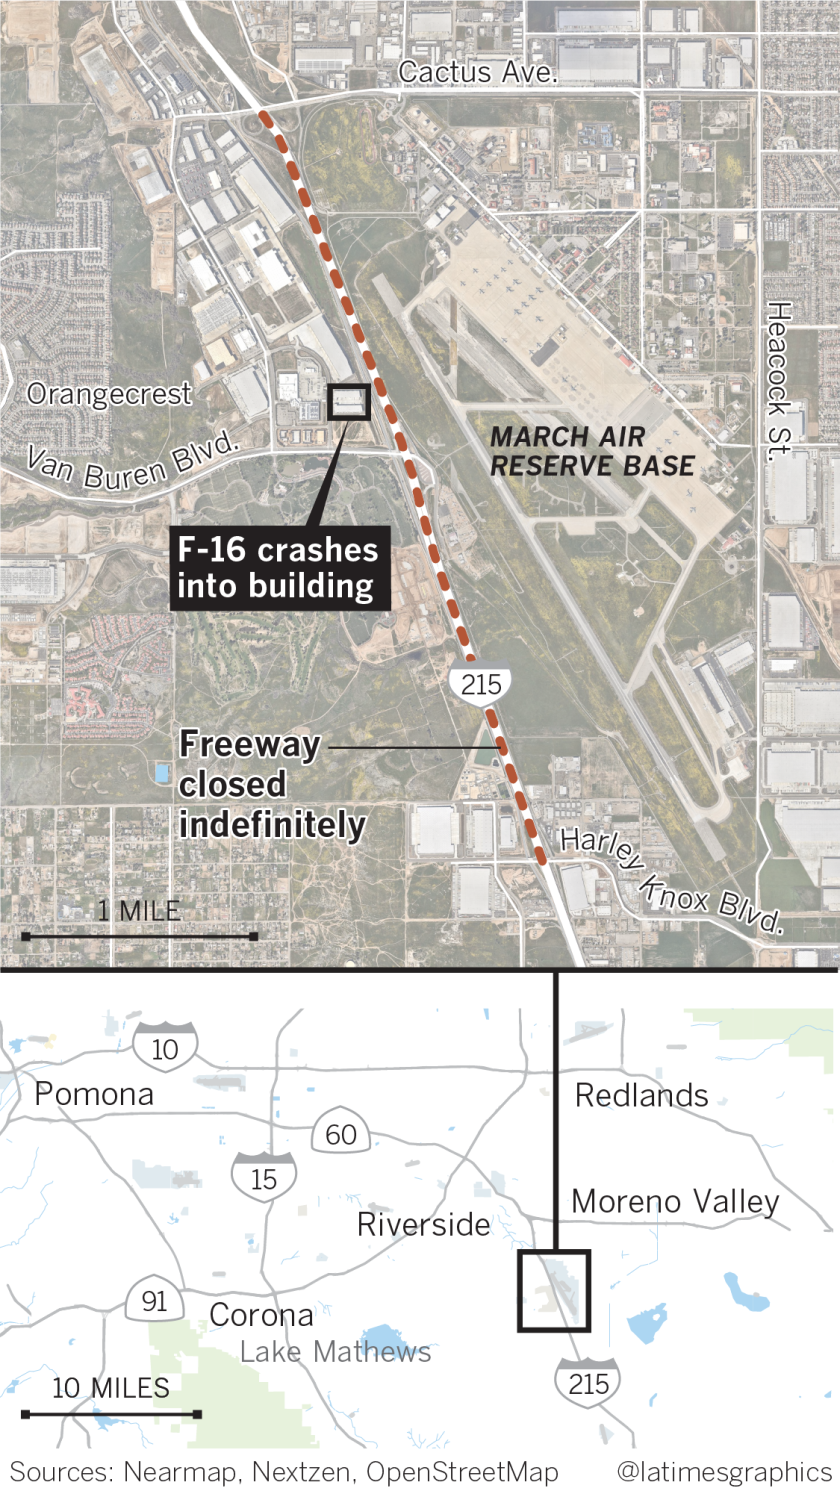 la-me-ln-g-freeway-closure-plane-crash-web-20190517